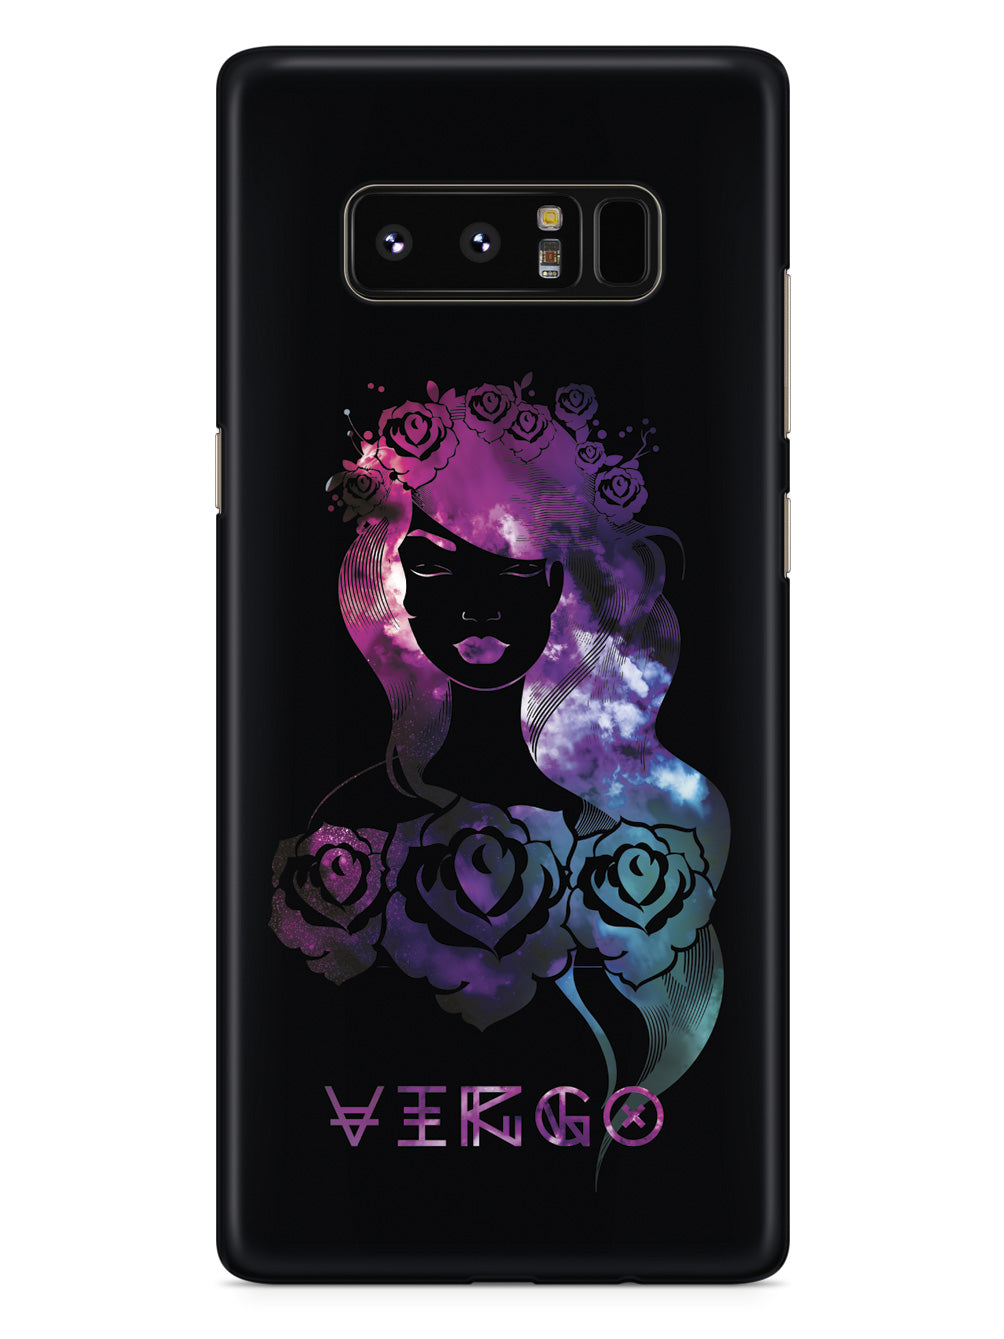 Cosmic Zodiac - Virgo Case